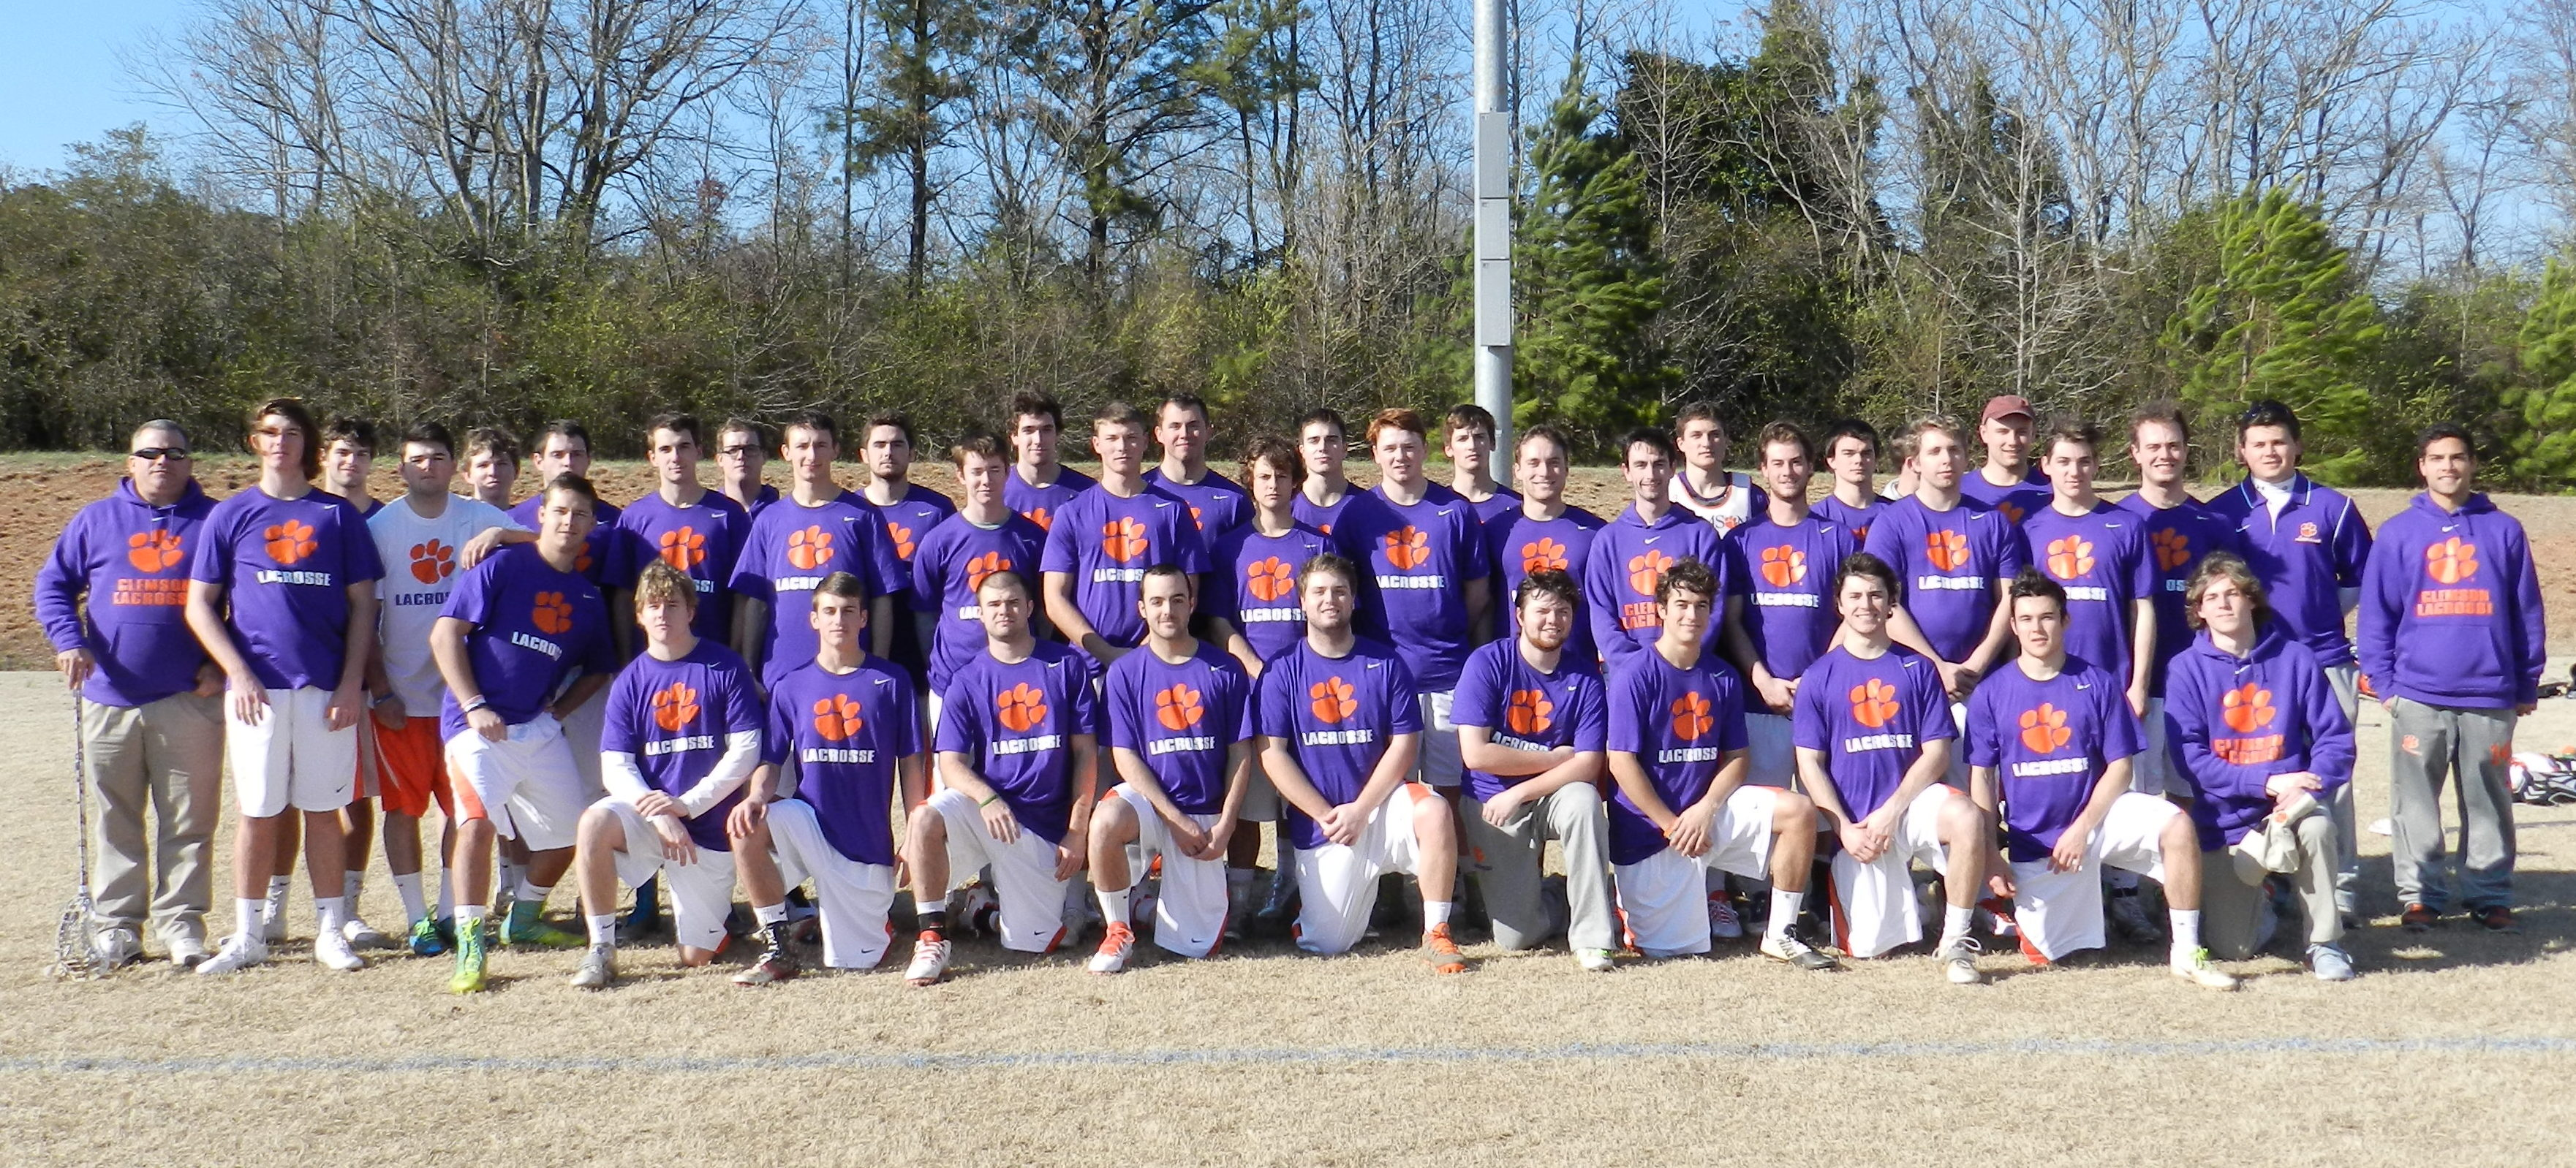 http://laxteams.net/files_public/1/1134/files/TeamPhotos/lax_%2715.jpg